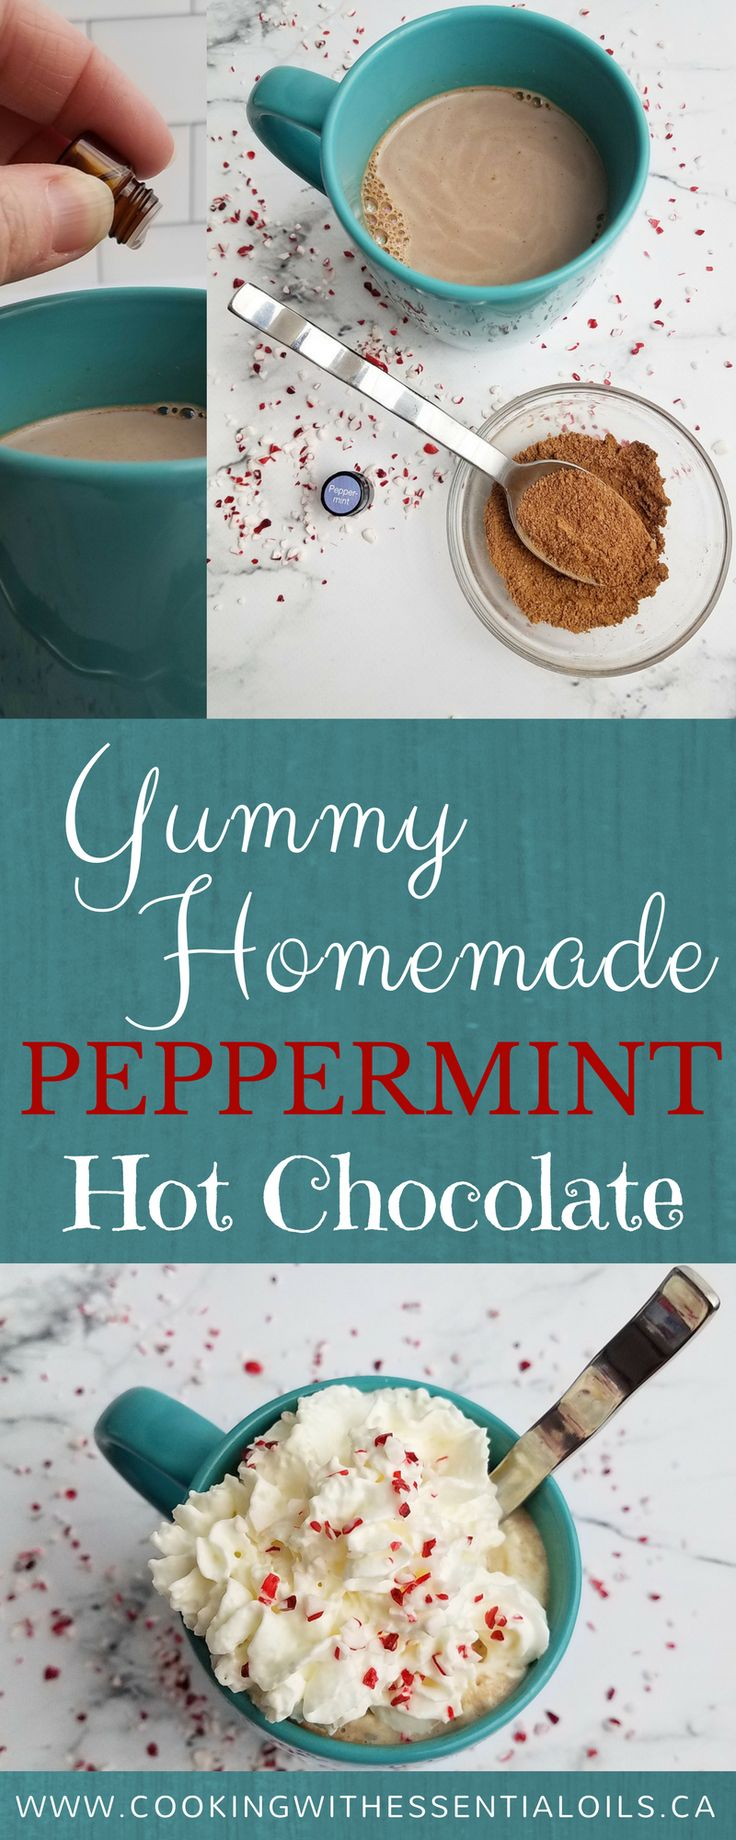 This post is brought to you by guest blogger Amy Jackson @learnblogphotog who shows off her incredible photography skills with a recipe for Yummy Homemade Peppermint Hot Chocolate made with peppermint #essentialoils #foodblogger #peppermint